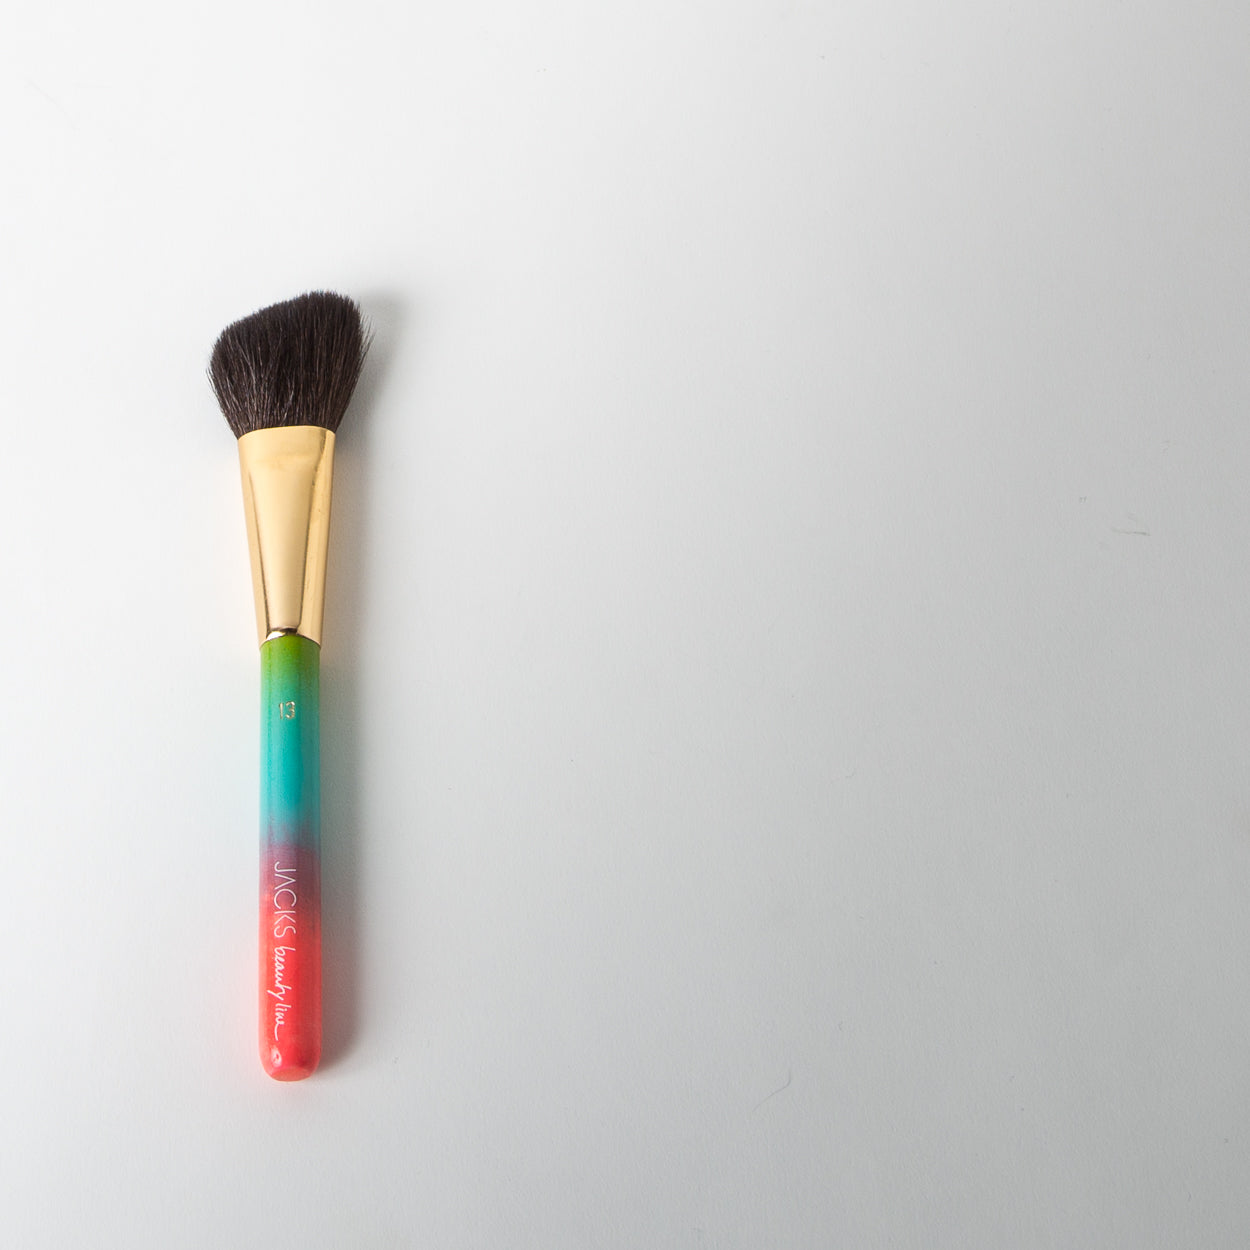 Brush no.13 - Rouge & Contouring